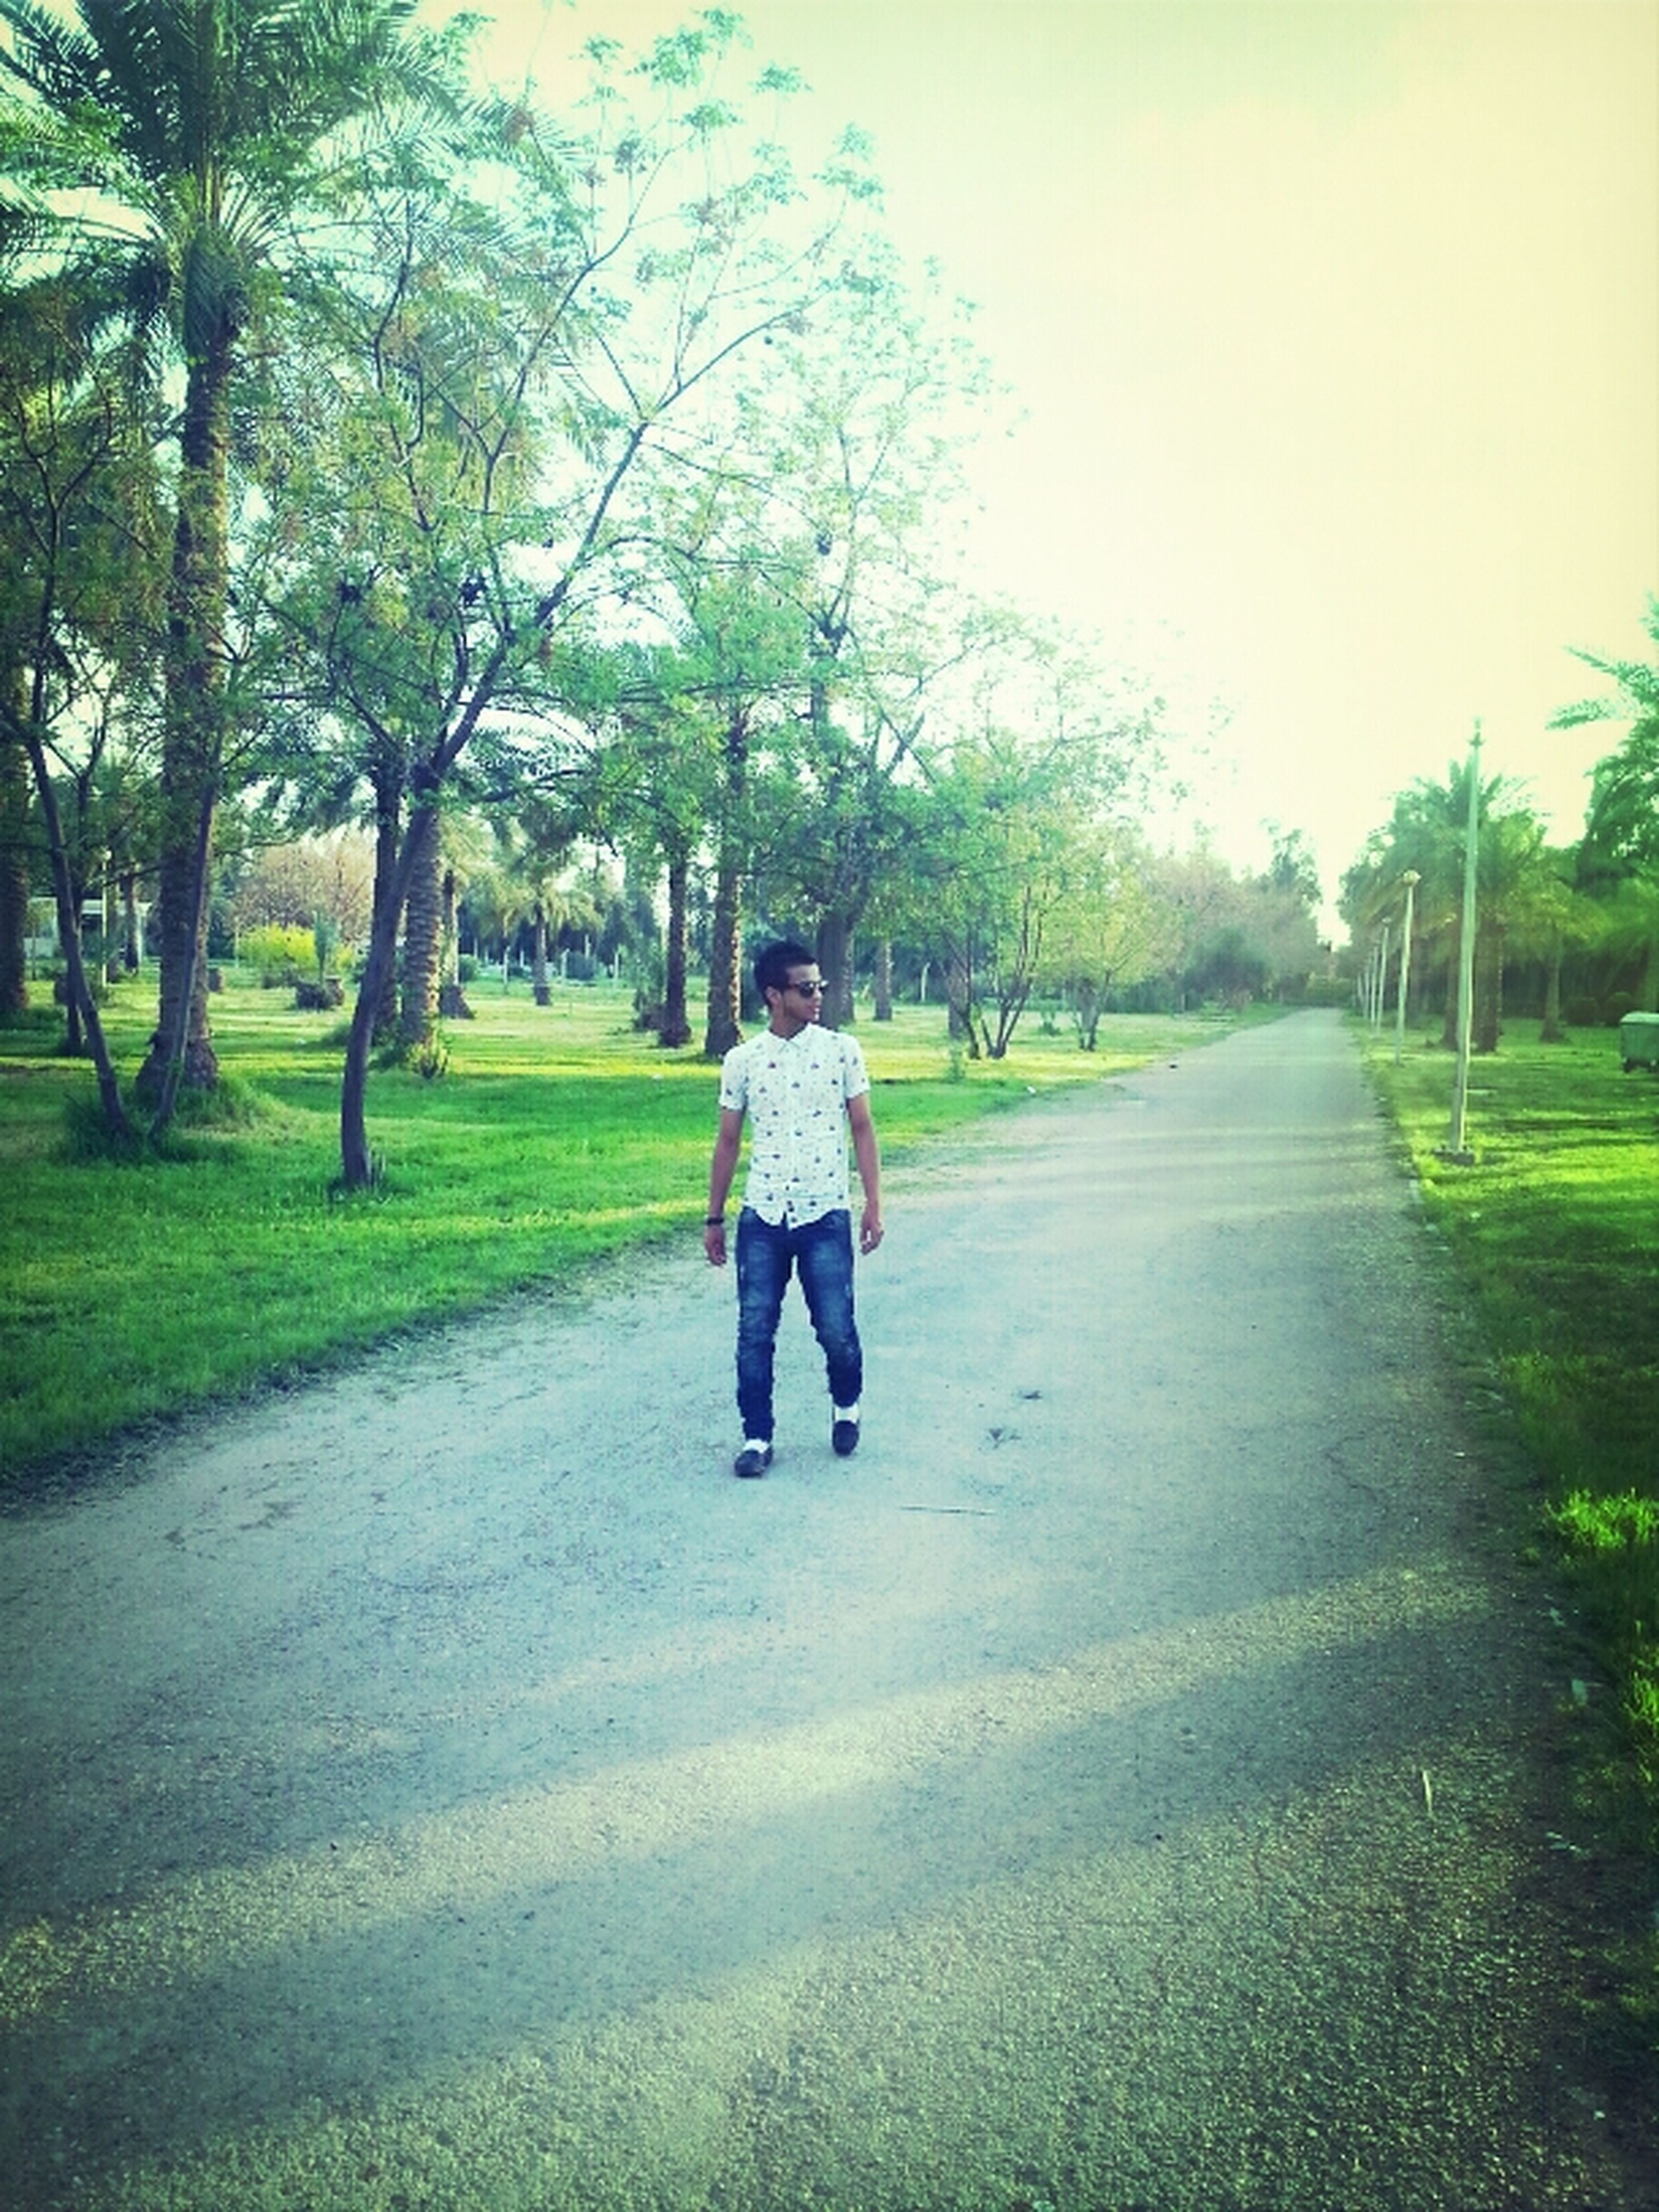 full length, tree, the way forward, lifestyles, rear view, walking, casual clothing, leisure activity, road, diminishing perspective, grass, childhood, footpath, vanishing point, park - man made space, day, street, growth